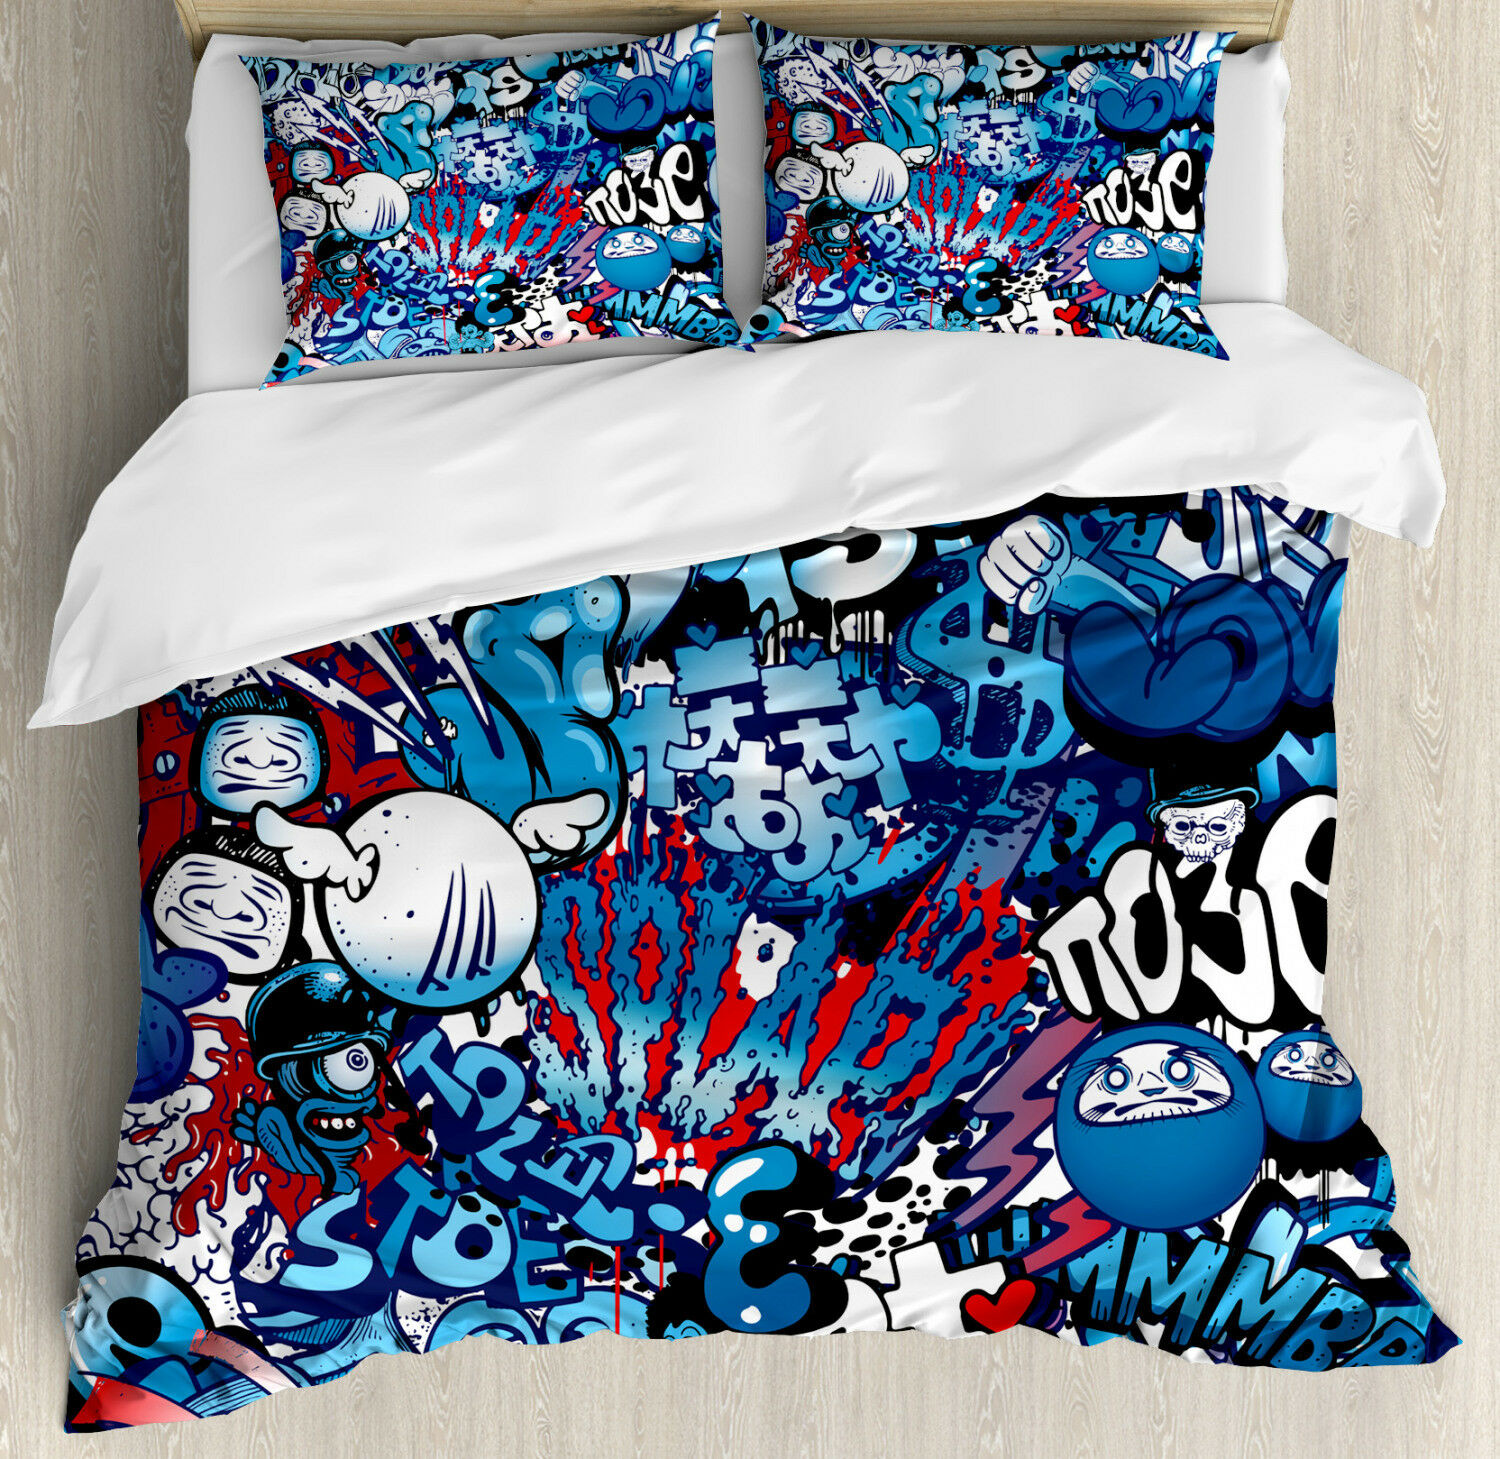 colorful Duvet Cover Set with Pillow Shams Graffiti Street Art Print